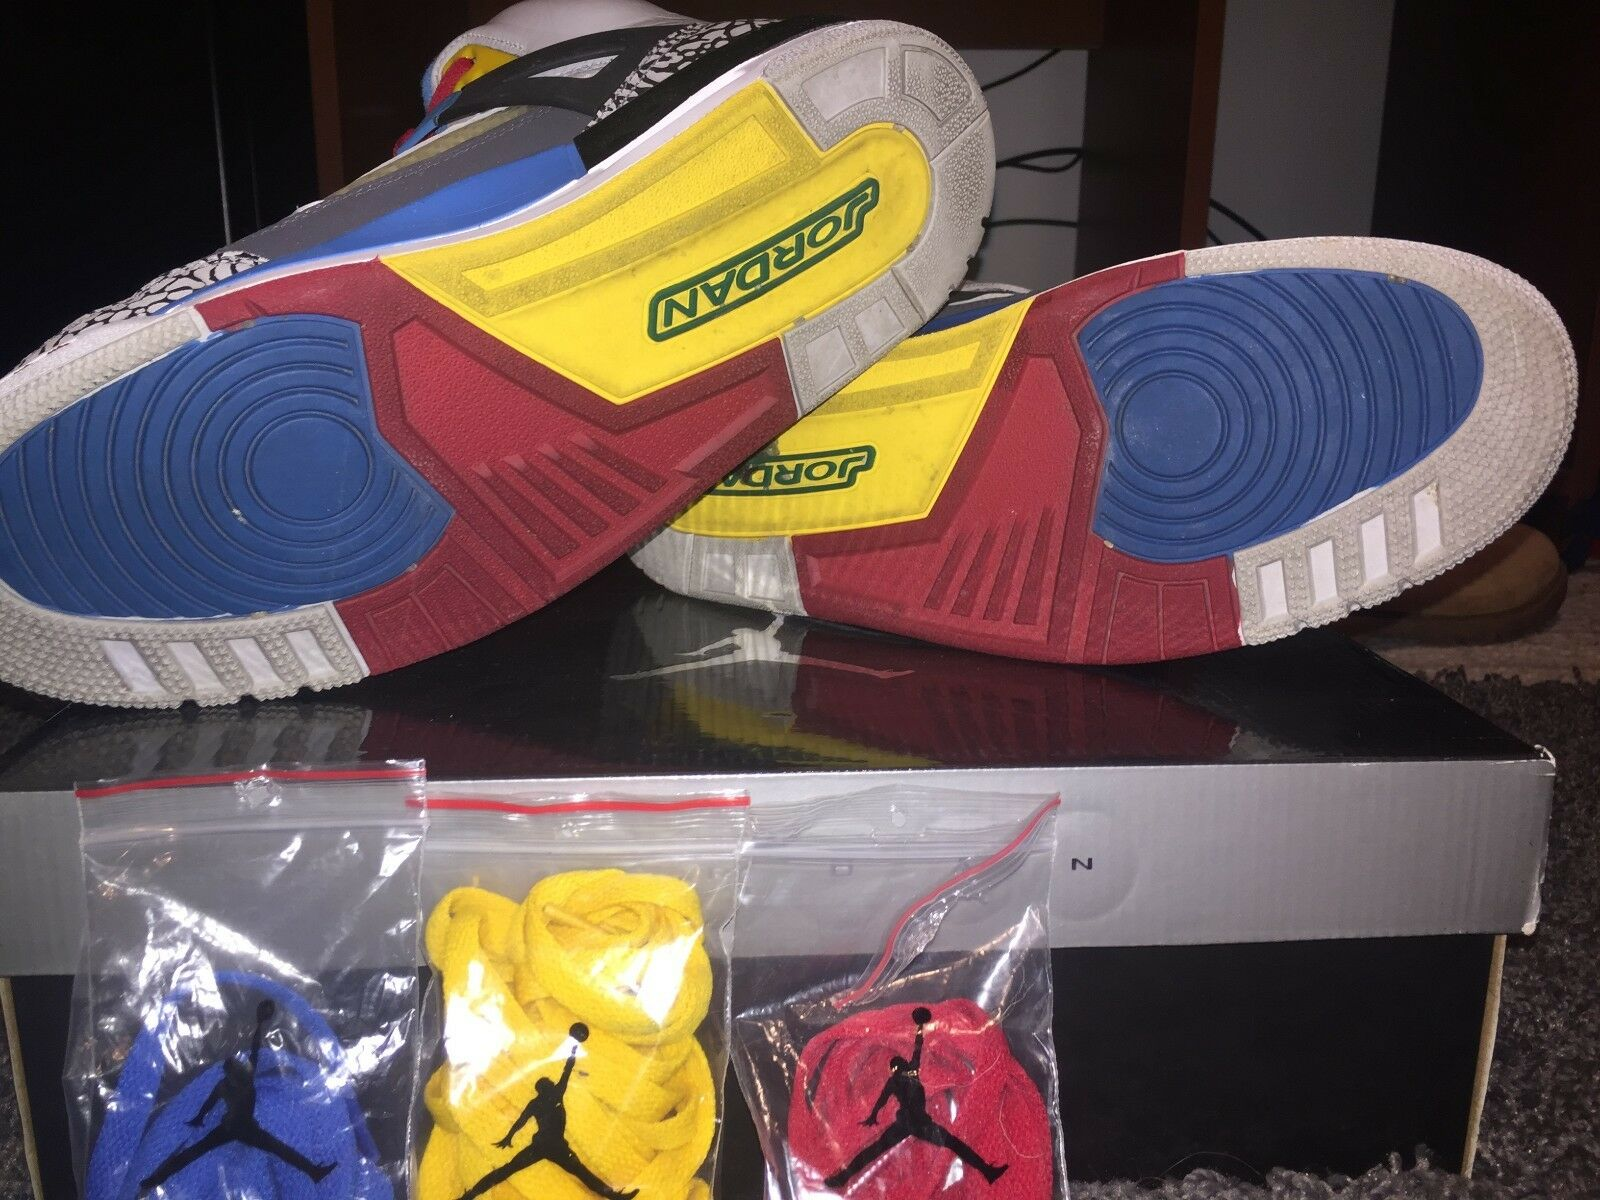 Air Jordan Retro Spizike Bordeaux Size 11- REDUCED - PRICE - REDUCED Green/Yellow/Red/Blue 9353b3